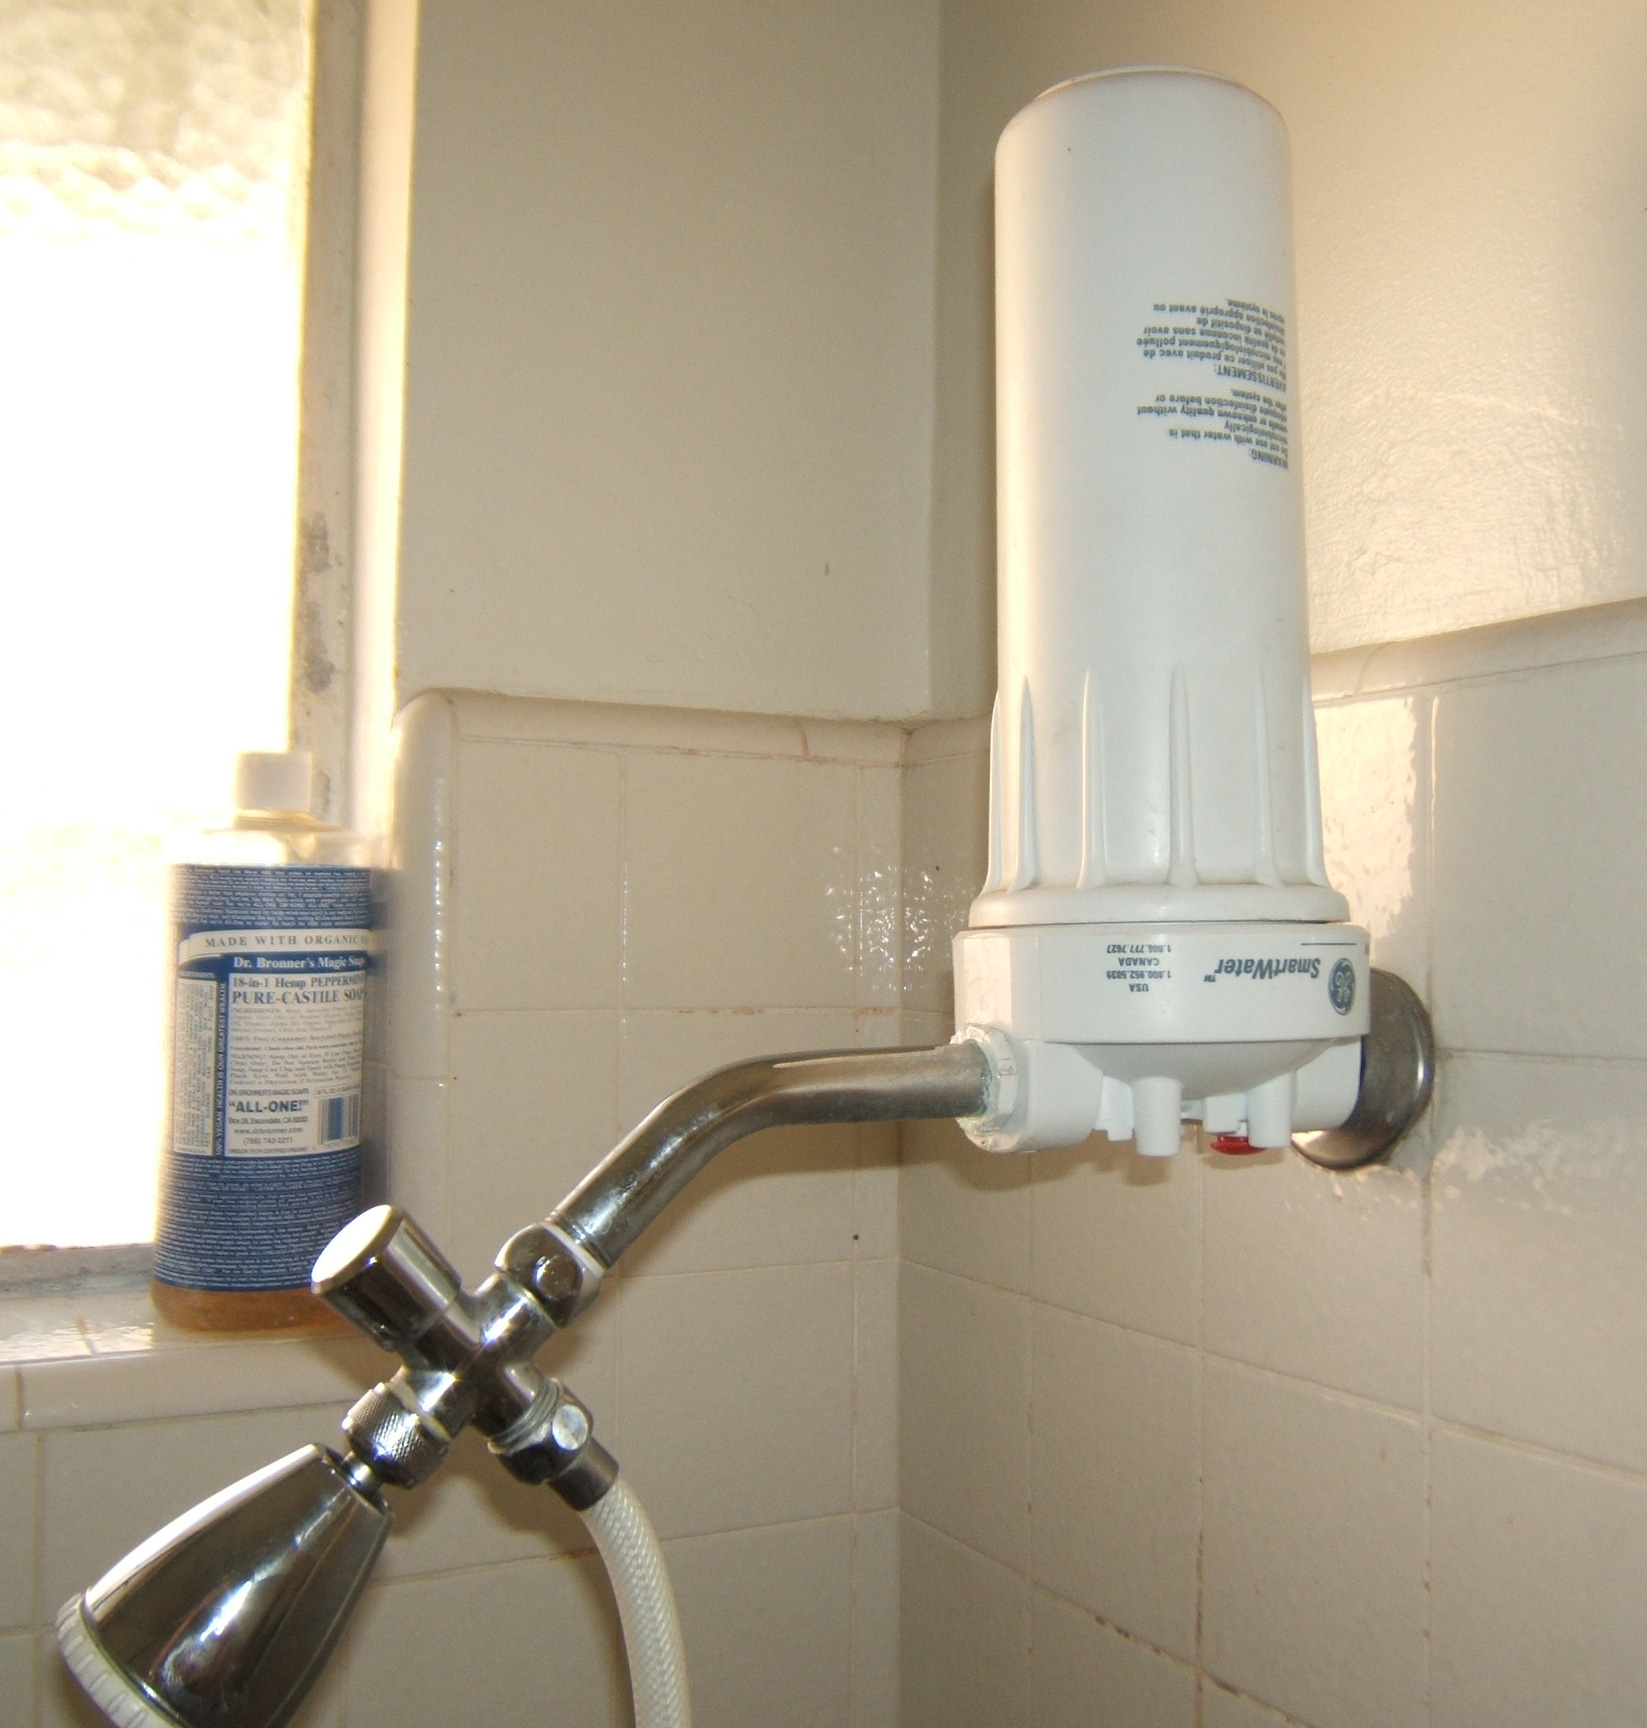 SHOWER FILTER FOR CHEAP Bad water make you itch? Make a great Shower Filter for 1/2 of buying one